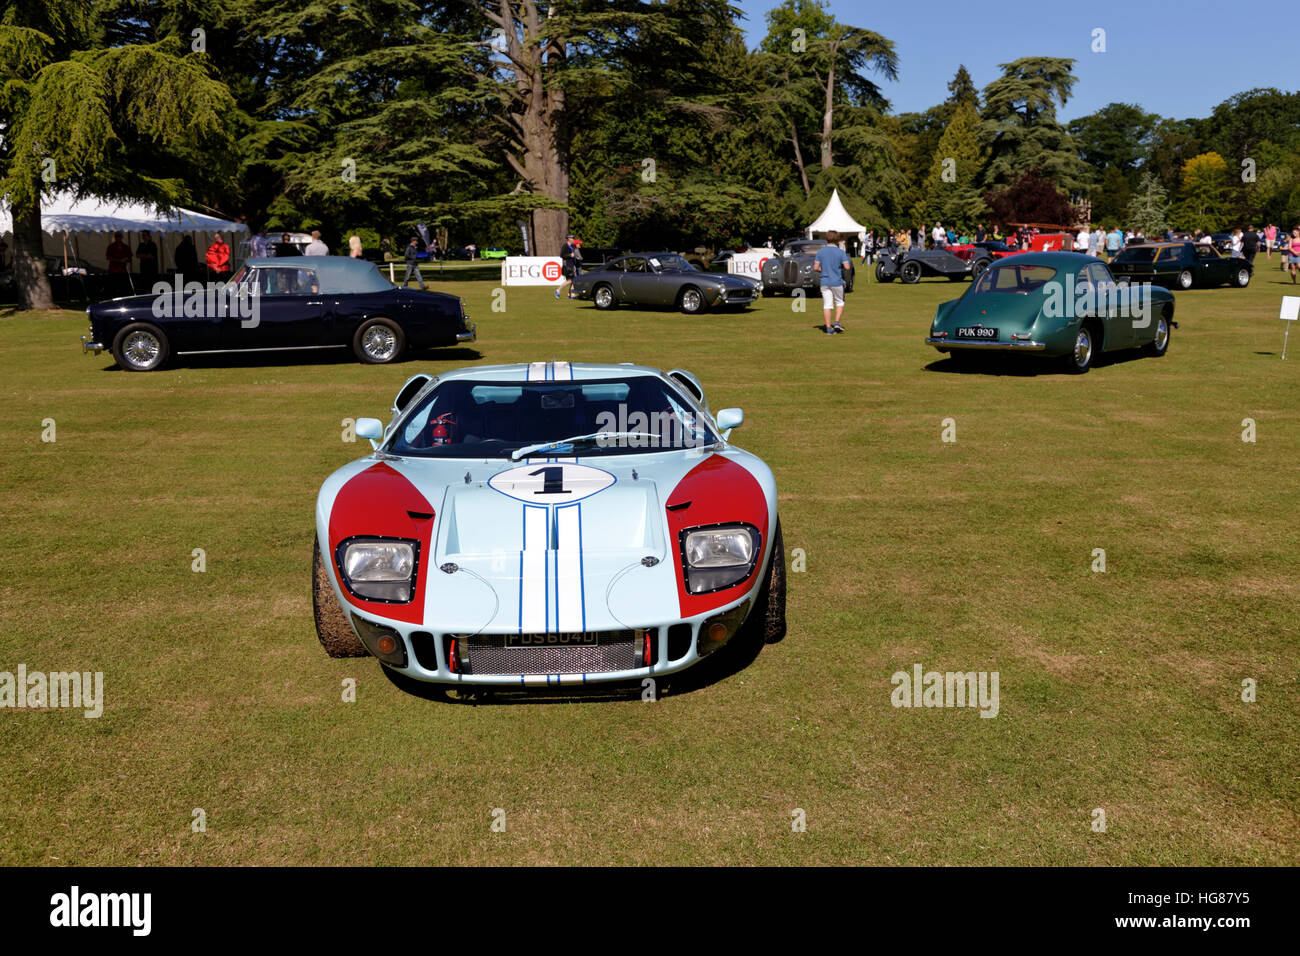 hight resolution of a ford gt40 endurance racing car at the wilton classic supercar show wilton house